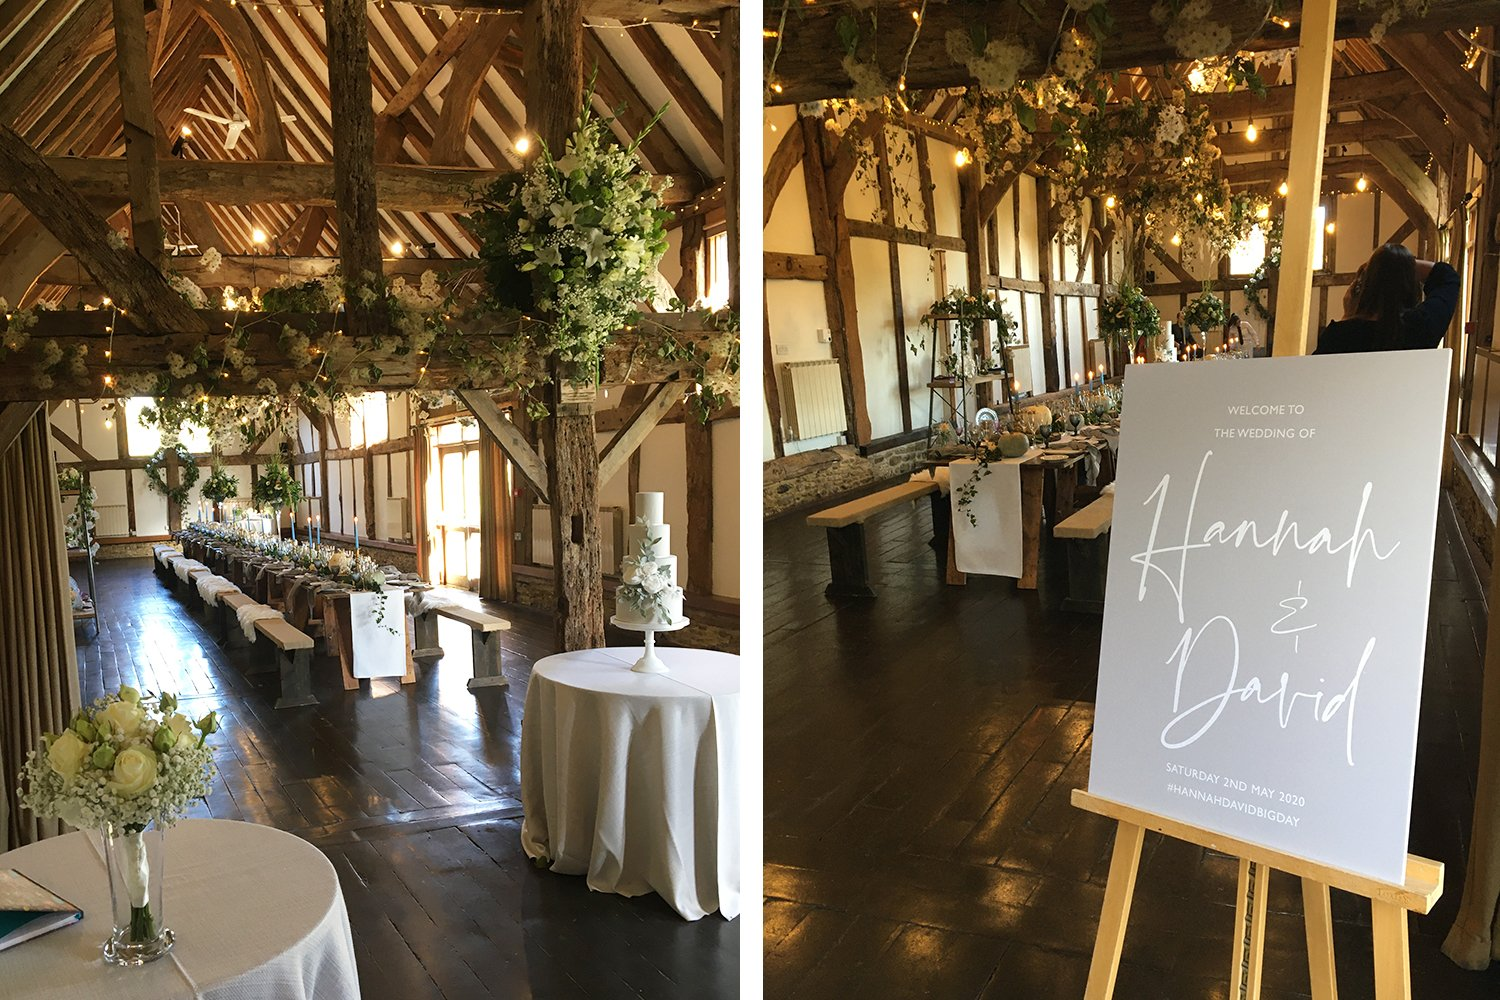 Wedding Signage by Flamboyant Invites, Loseley Park Supplier